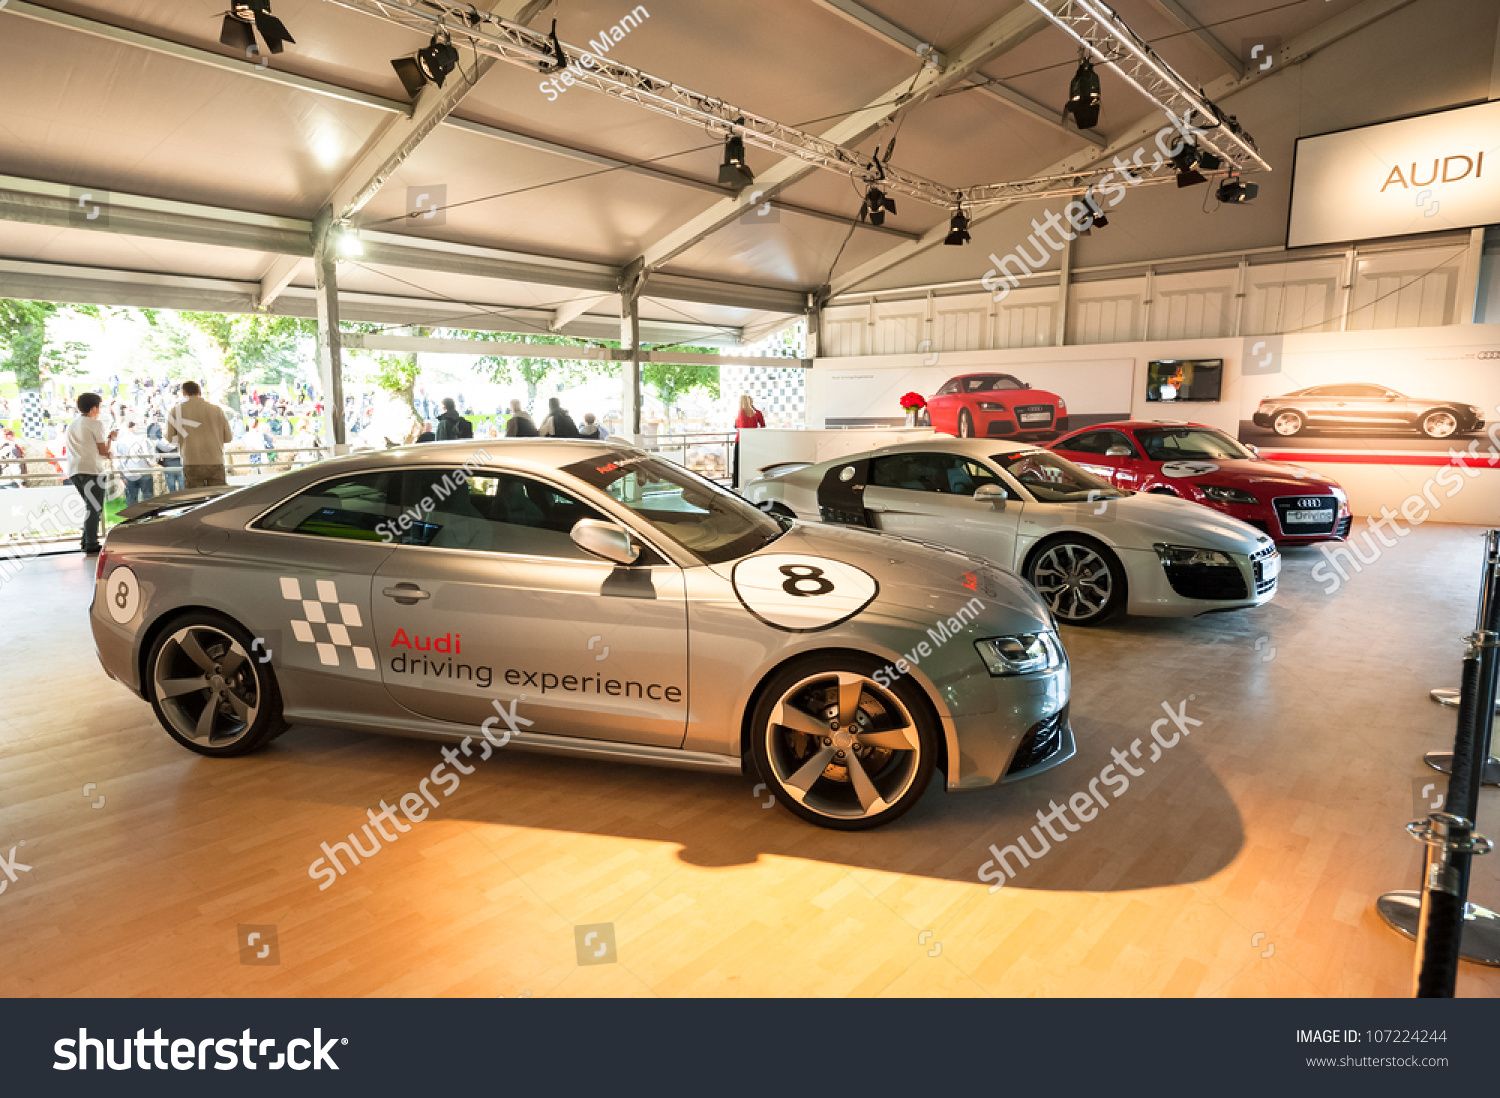 Goodwood Uk July 1 Collection Audi Stock Photo Edit Now 107224244